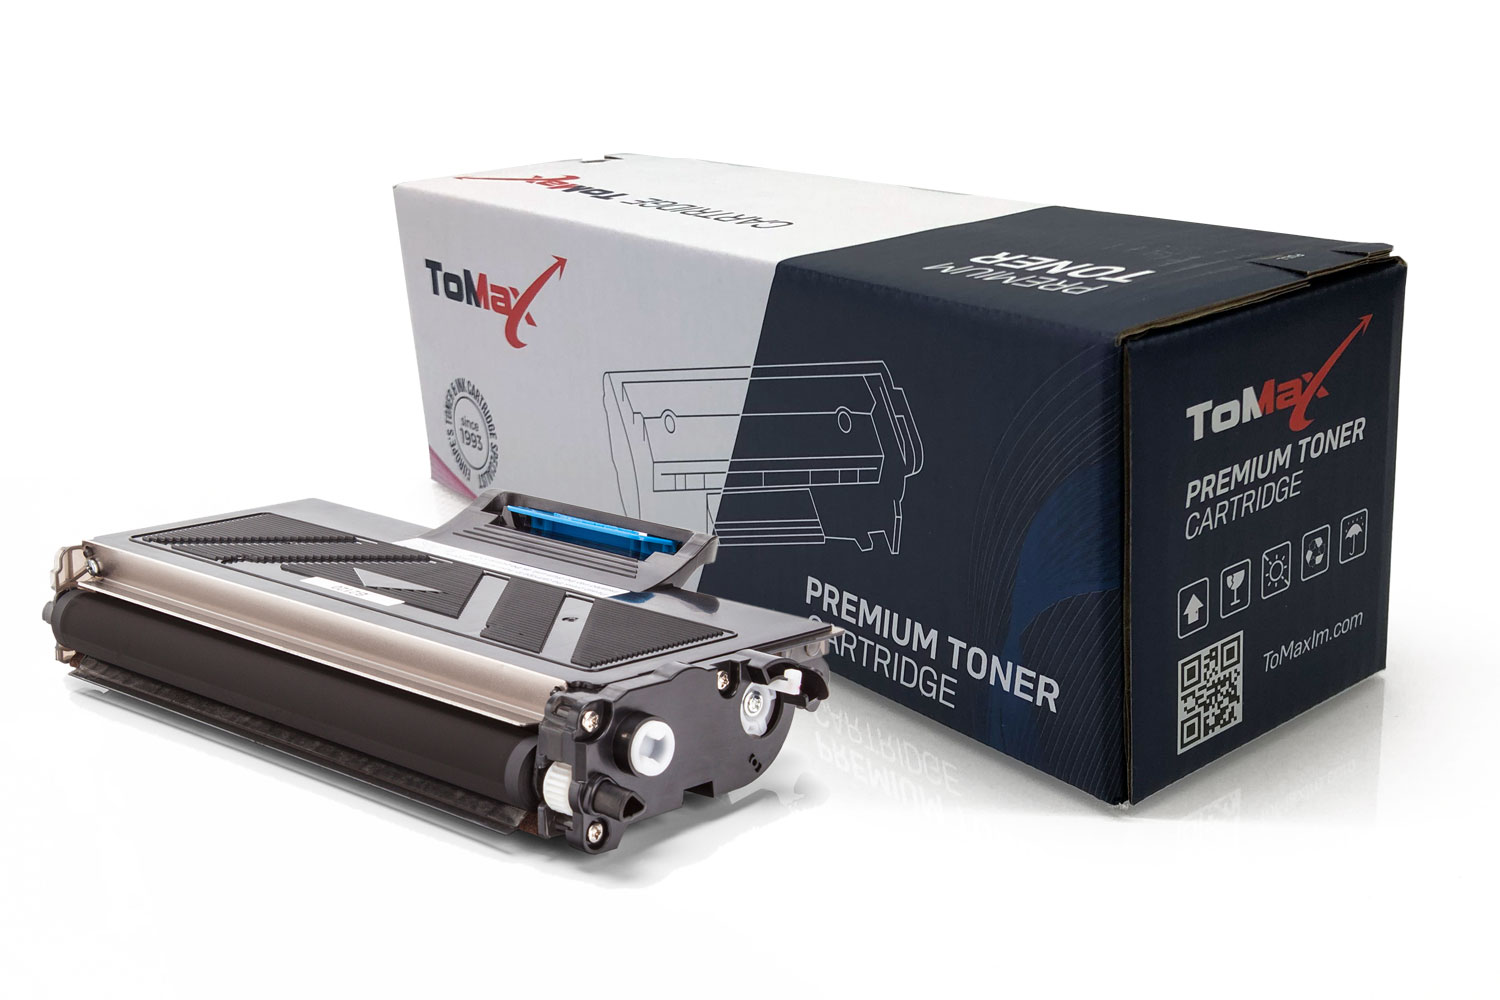 ToMax Premium Toner Cartridge replaces HP CC530A / 304A Black